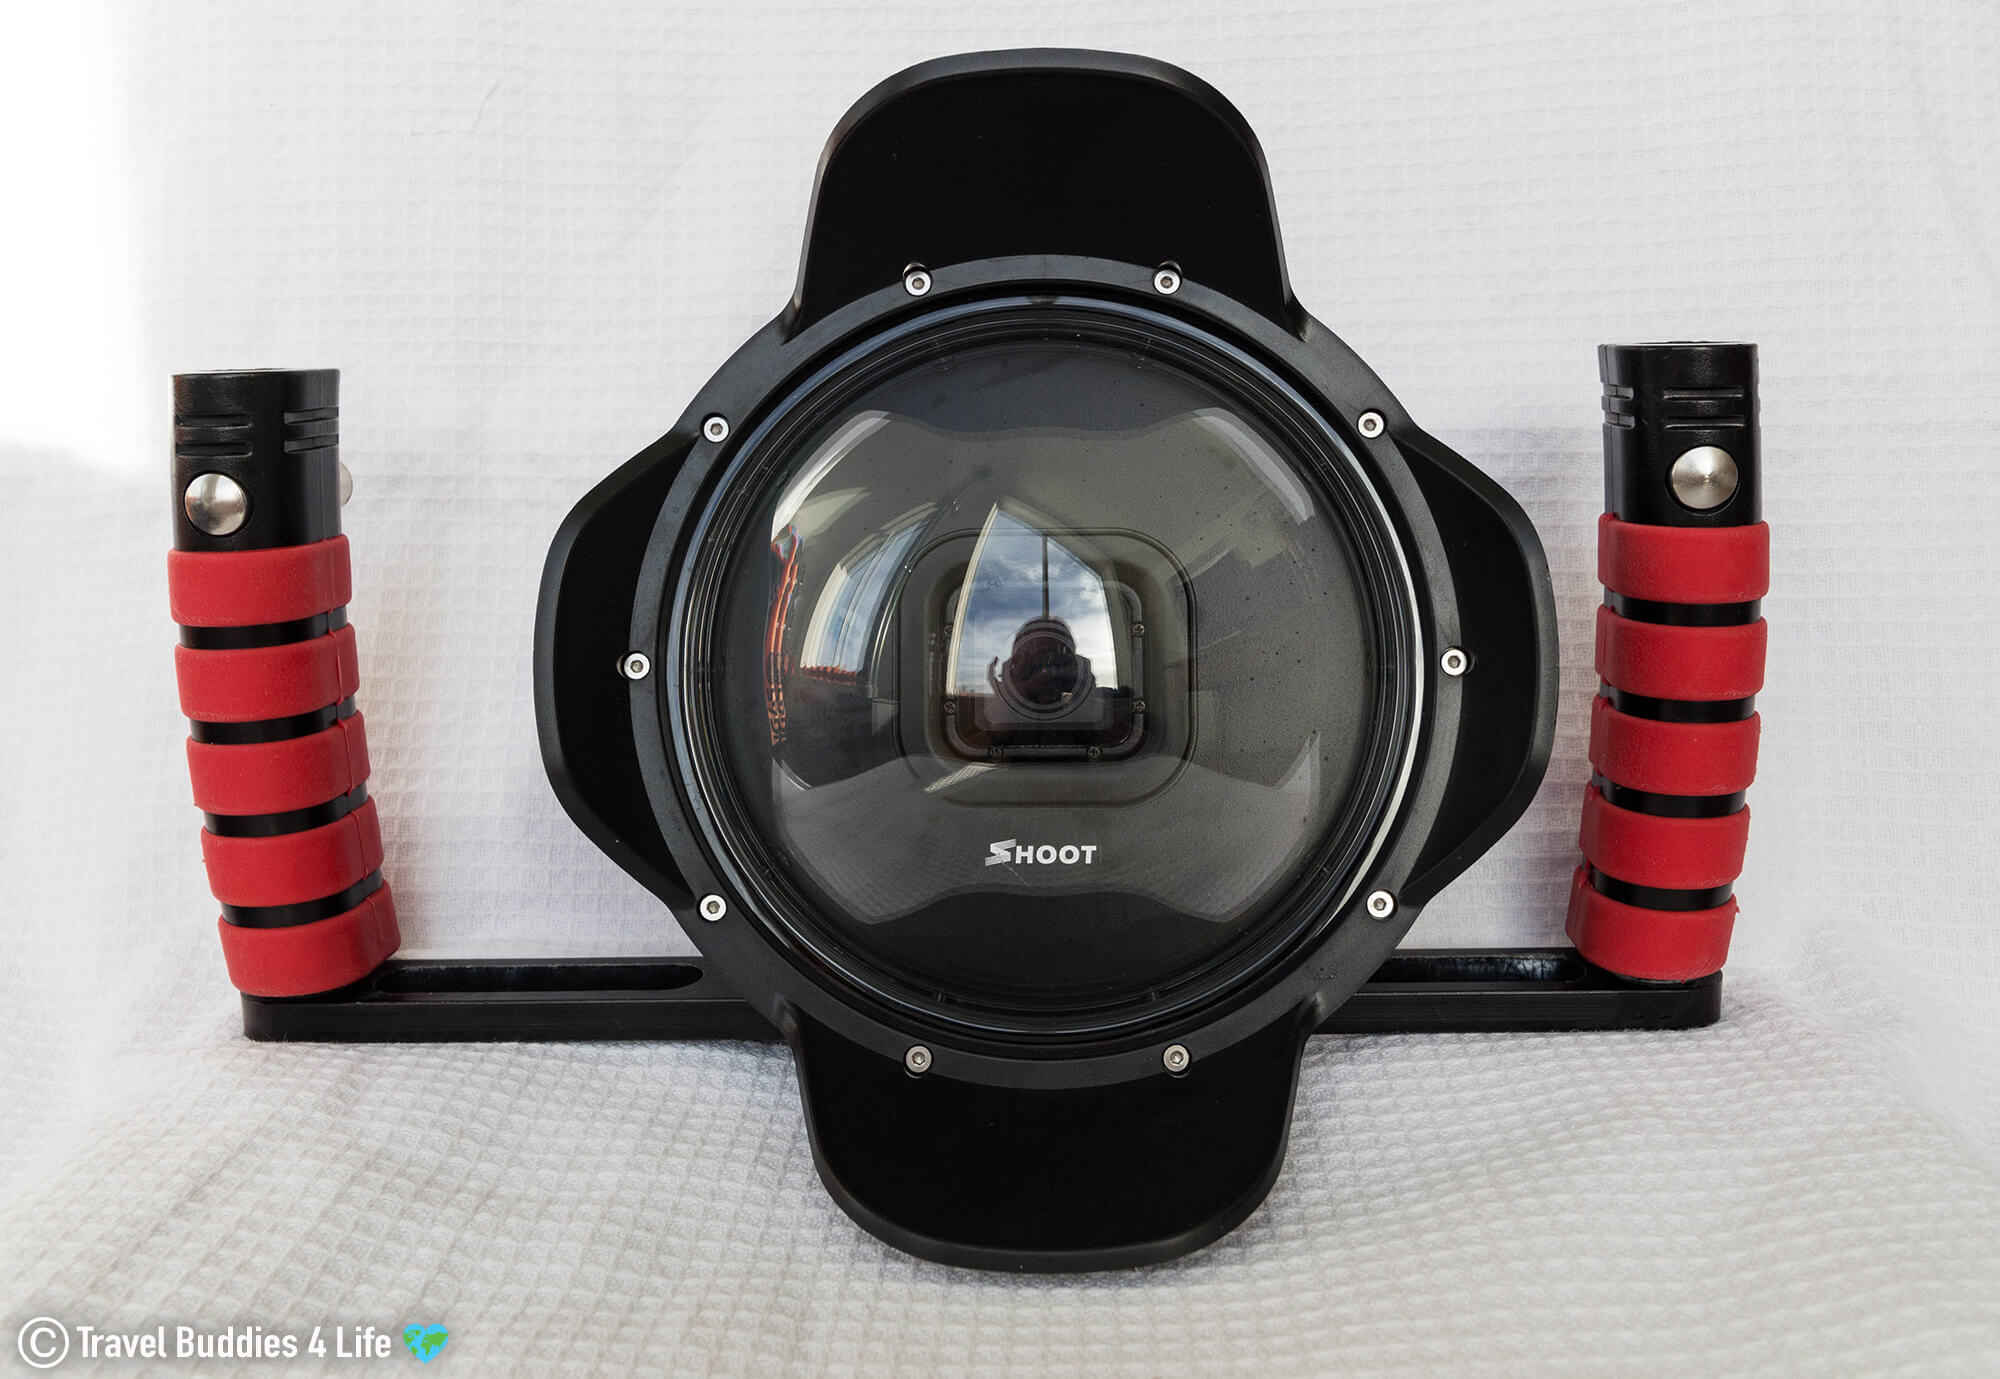 Go Pro With The Split Shot Dome For Above And Below Photographs In The Water